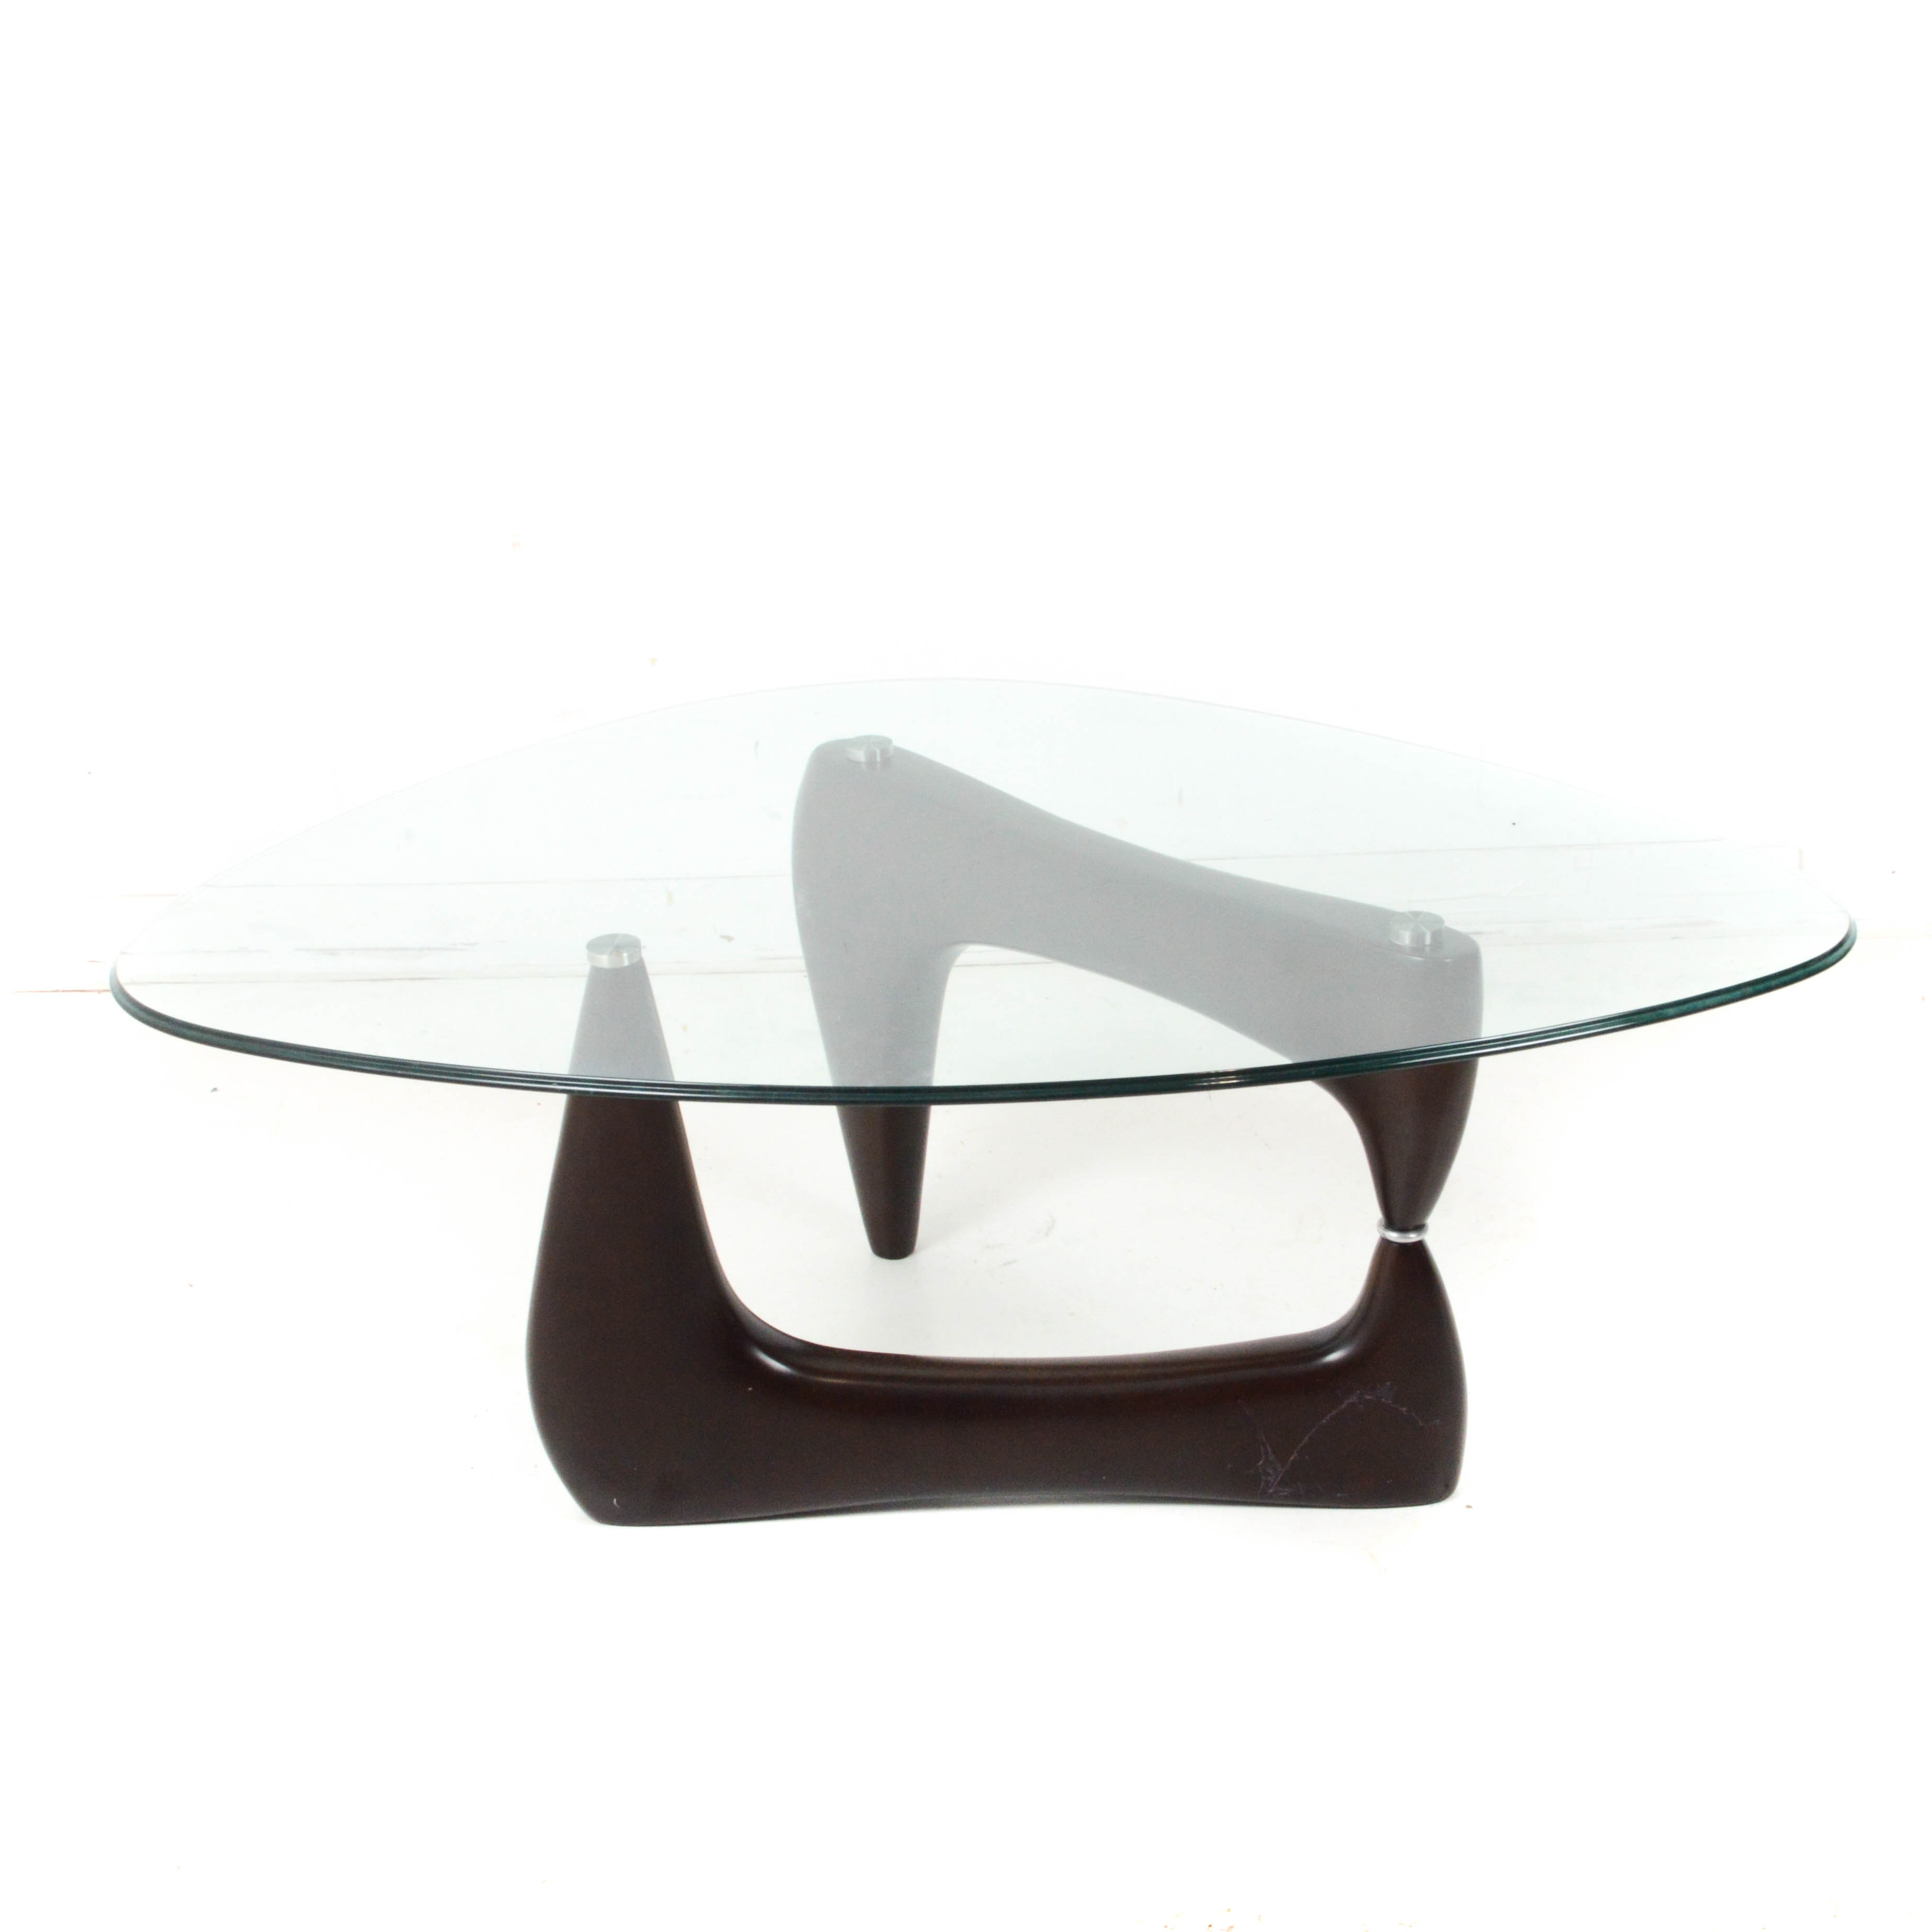 Noguchi Style Glass Top Coffee Table